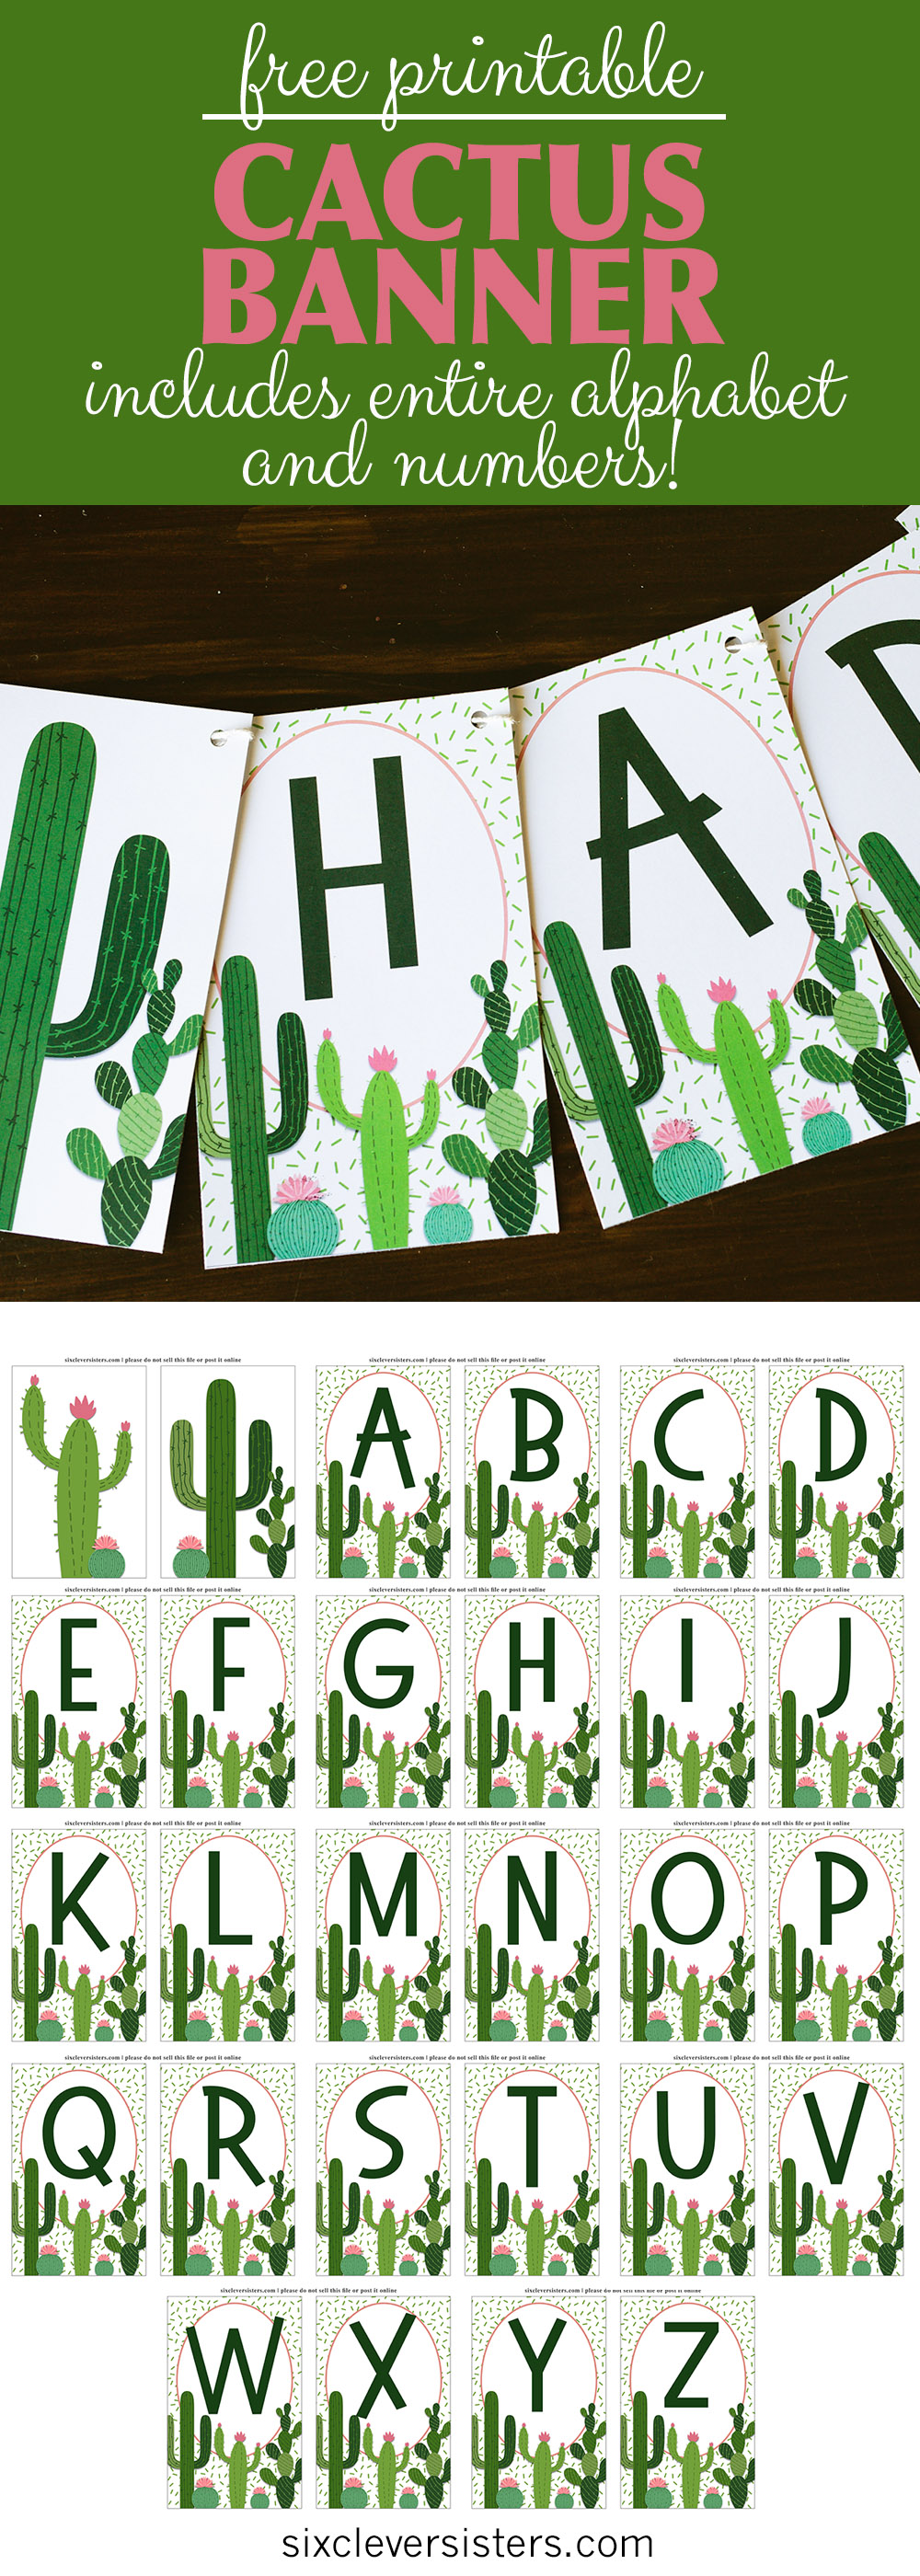 photo about Cactus Printable named Cactus Banner Free of charge Printable - 6 Good Sisters